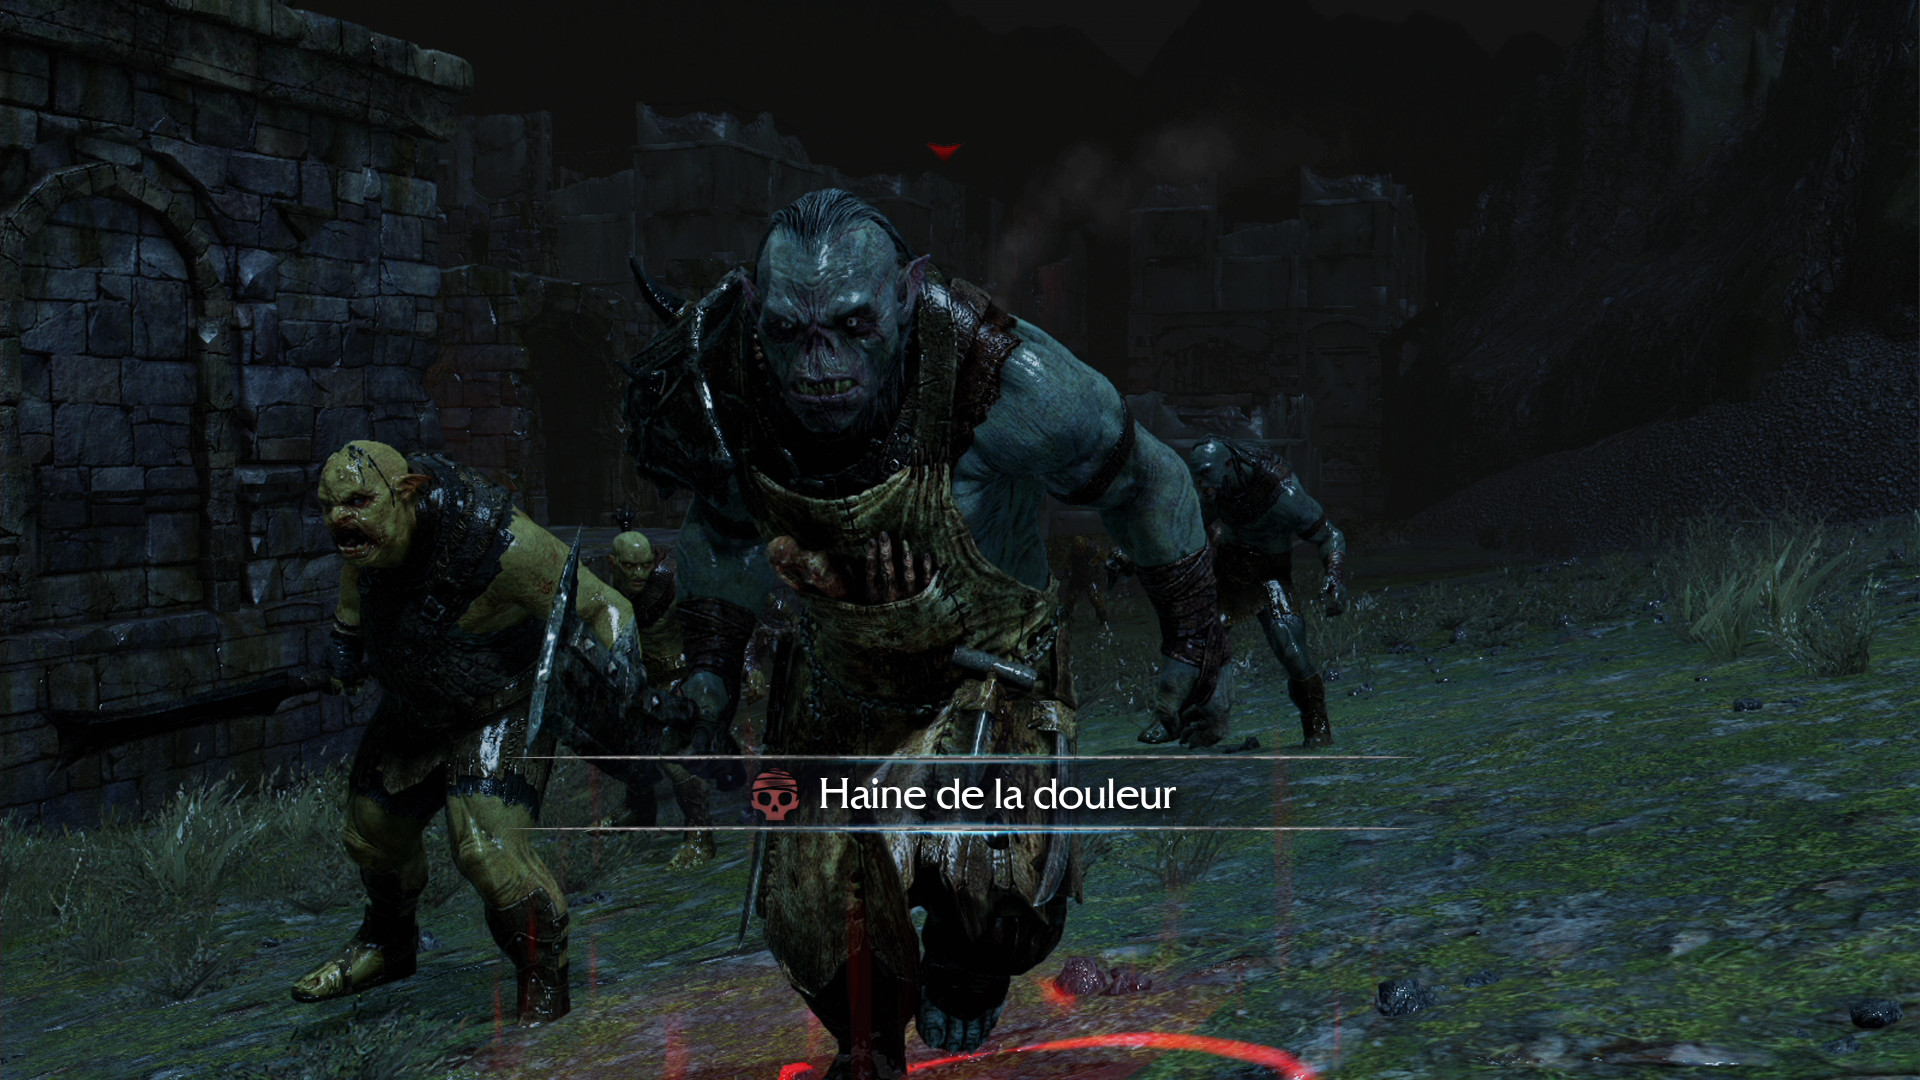 how to kill in shadow of mordor pc